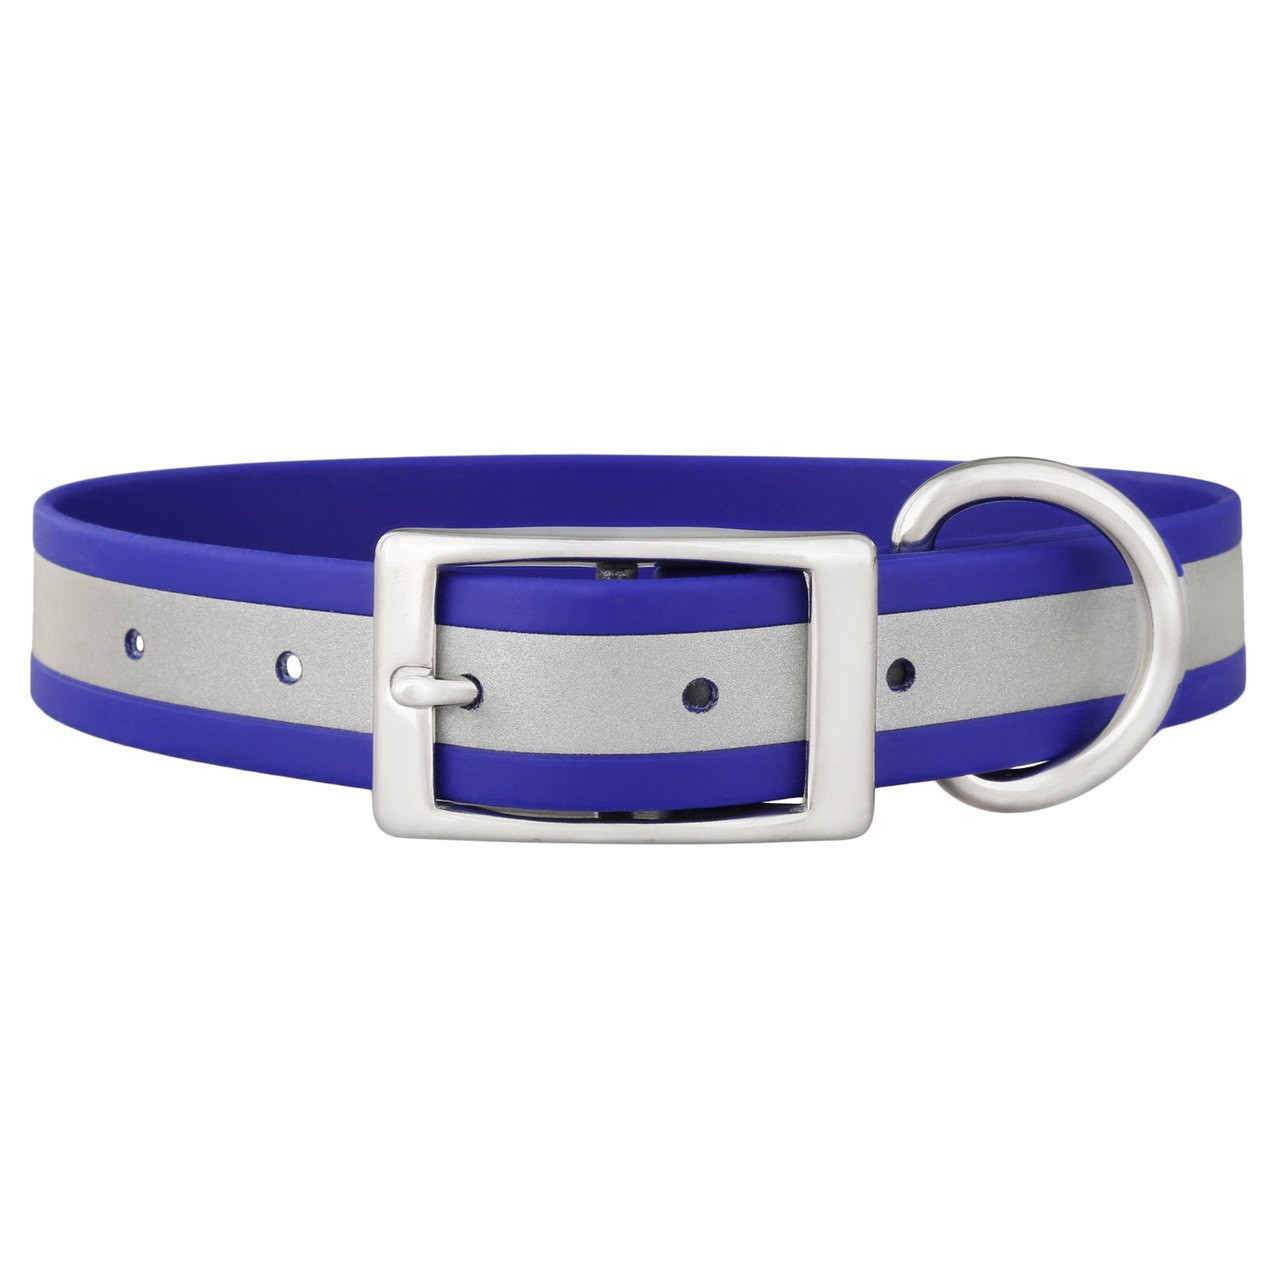 Engraved Reflective Waterproof Soft Grip Dog Collar Blue Buckle View